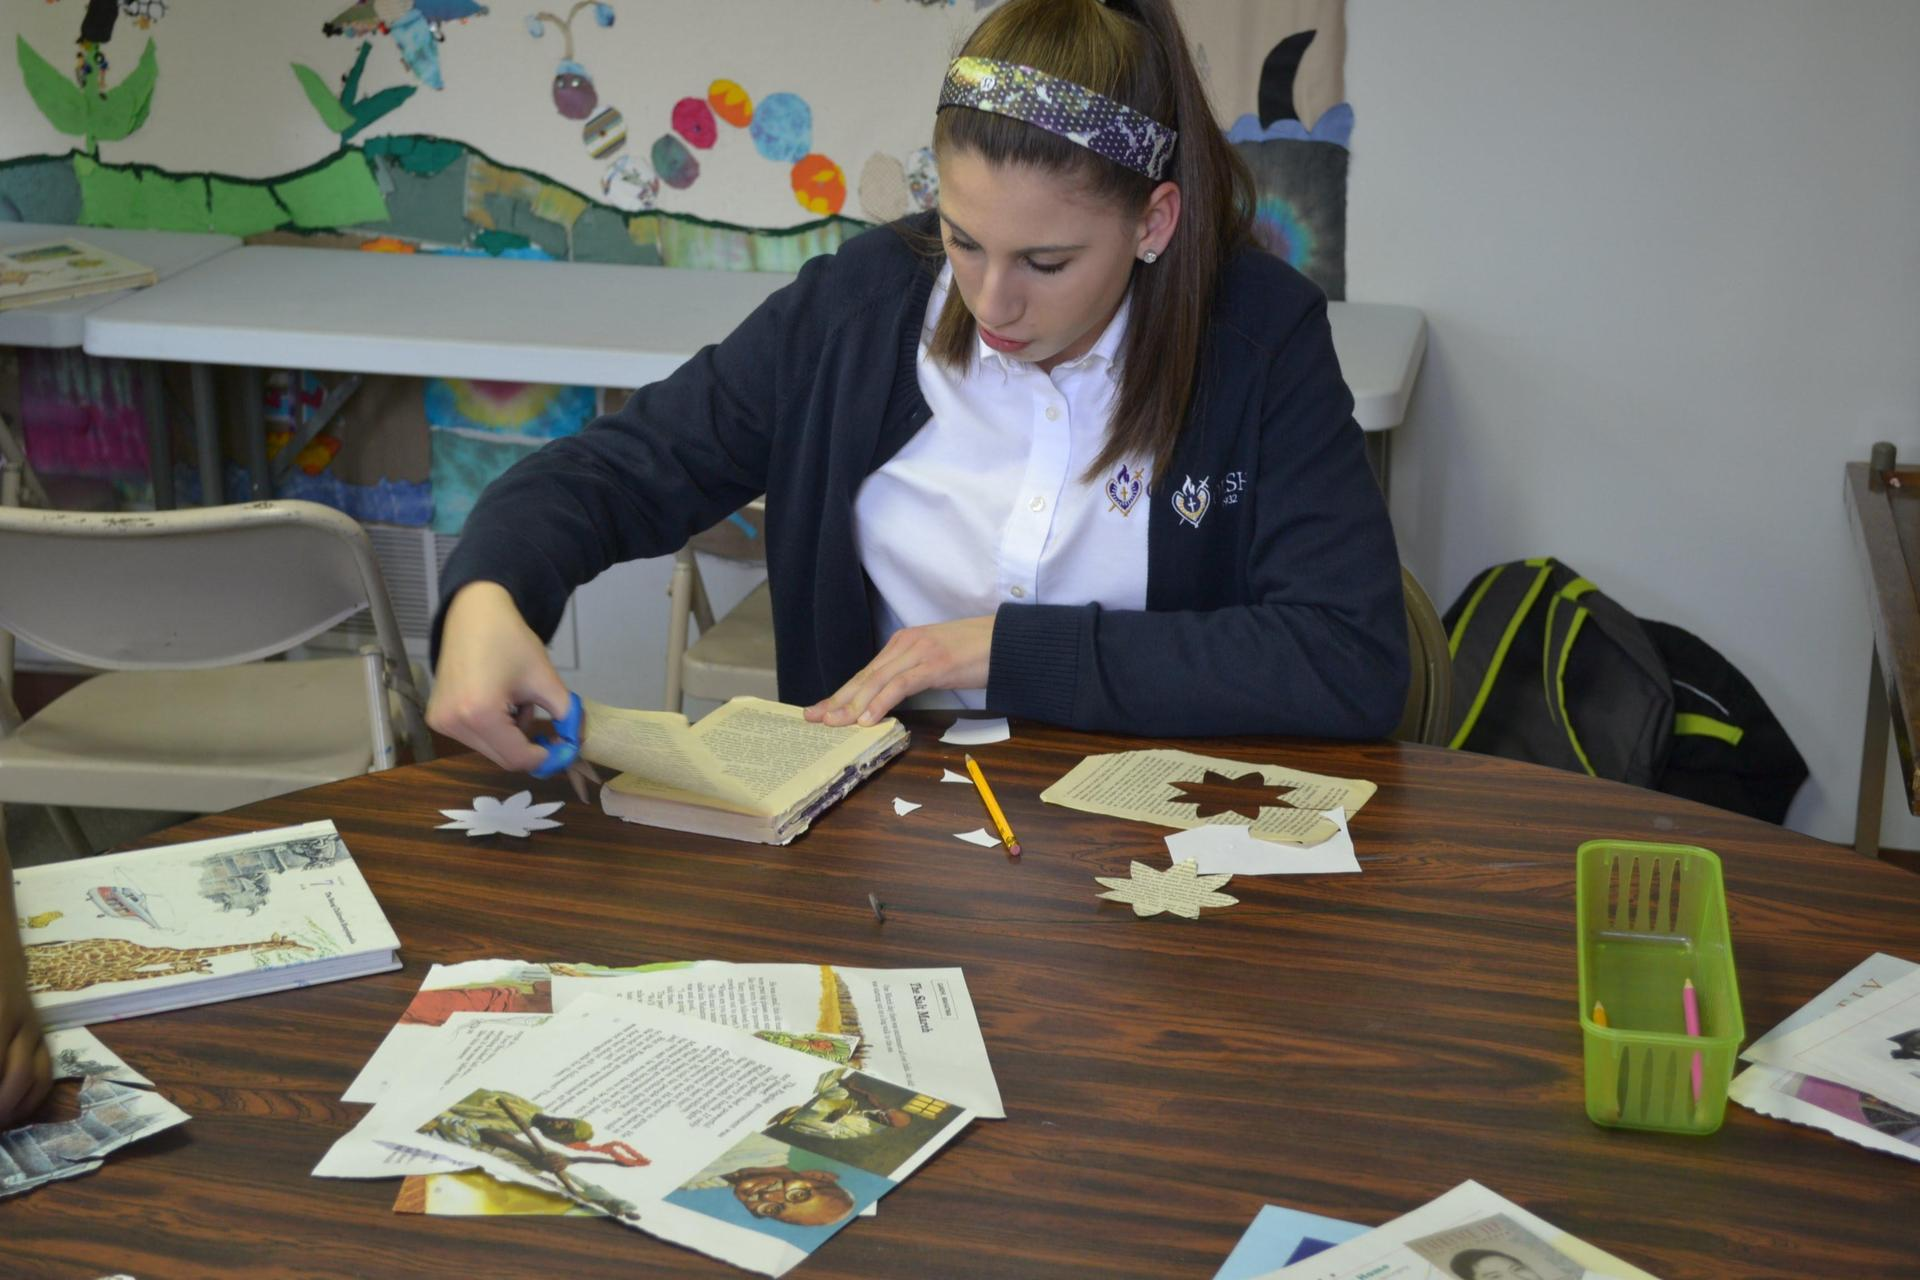 Francesca volunteering at the Mooncrest After School Program, helping the children make paper flowers during National Catholic Sisters Week last year.